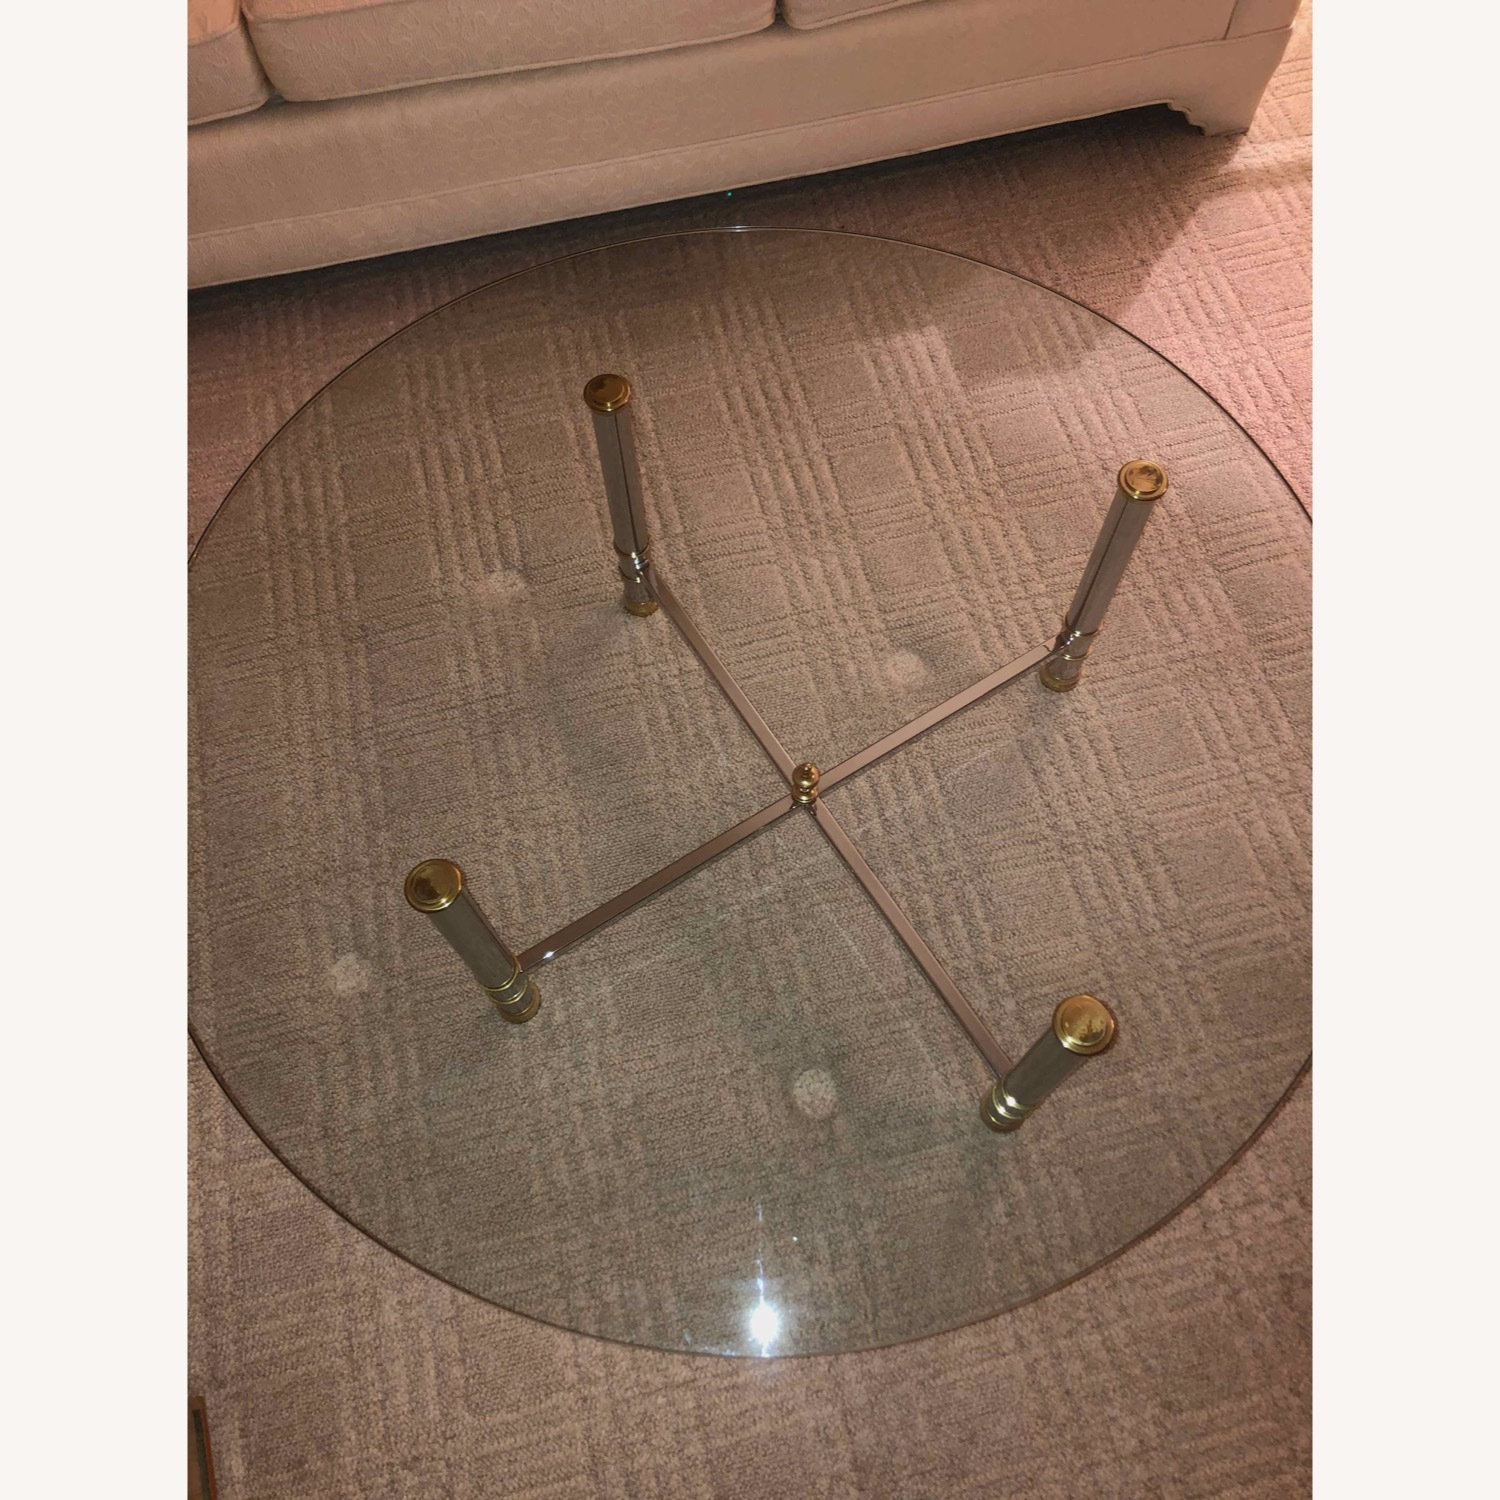 Taylor Made Custom Coffee Table with Brass and Chrome Base - image-2